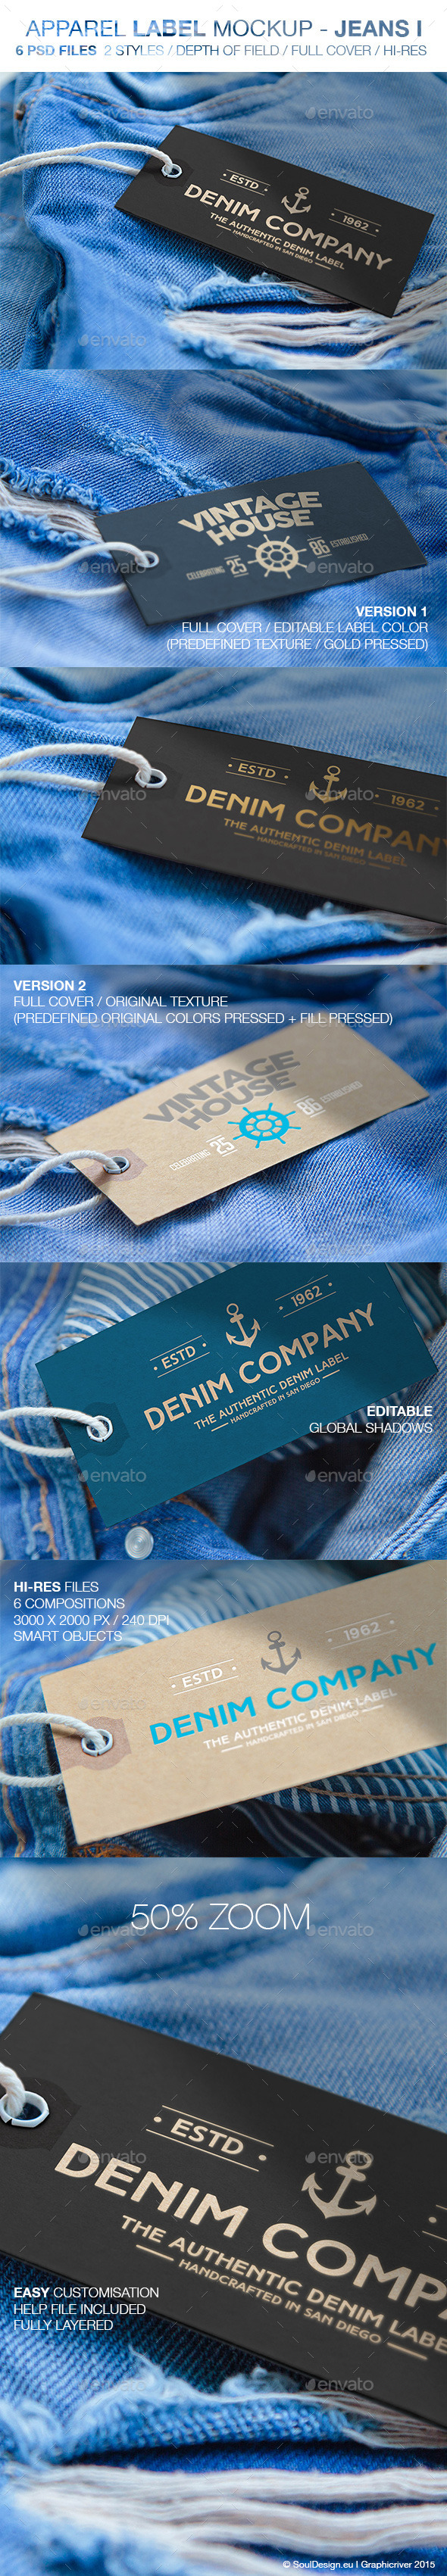 6 Apparel Label Mockups Jeans I